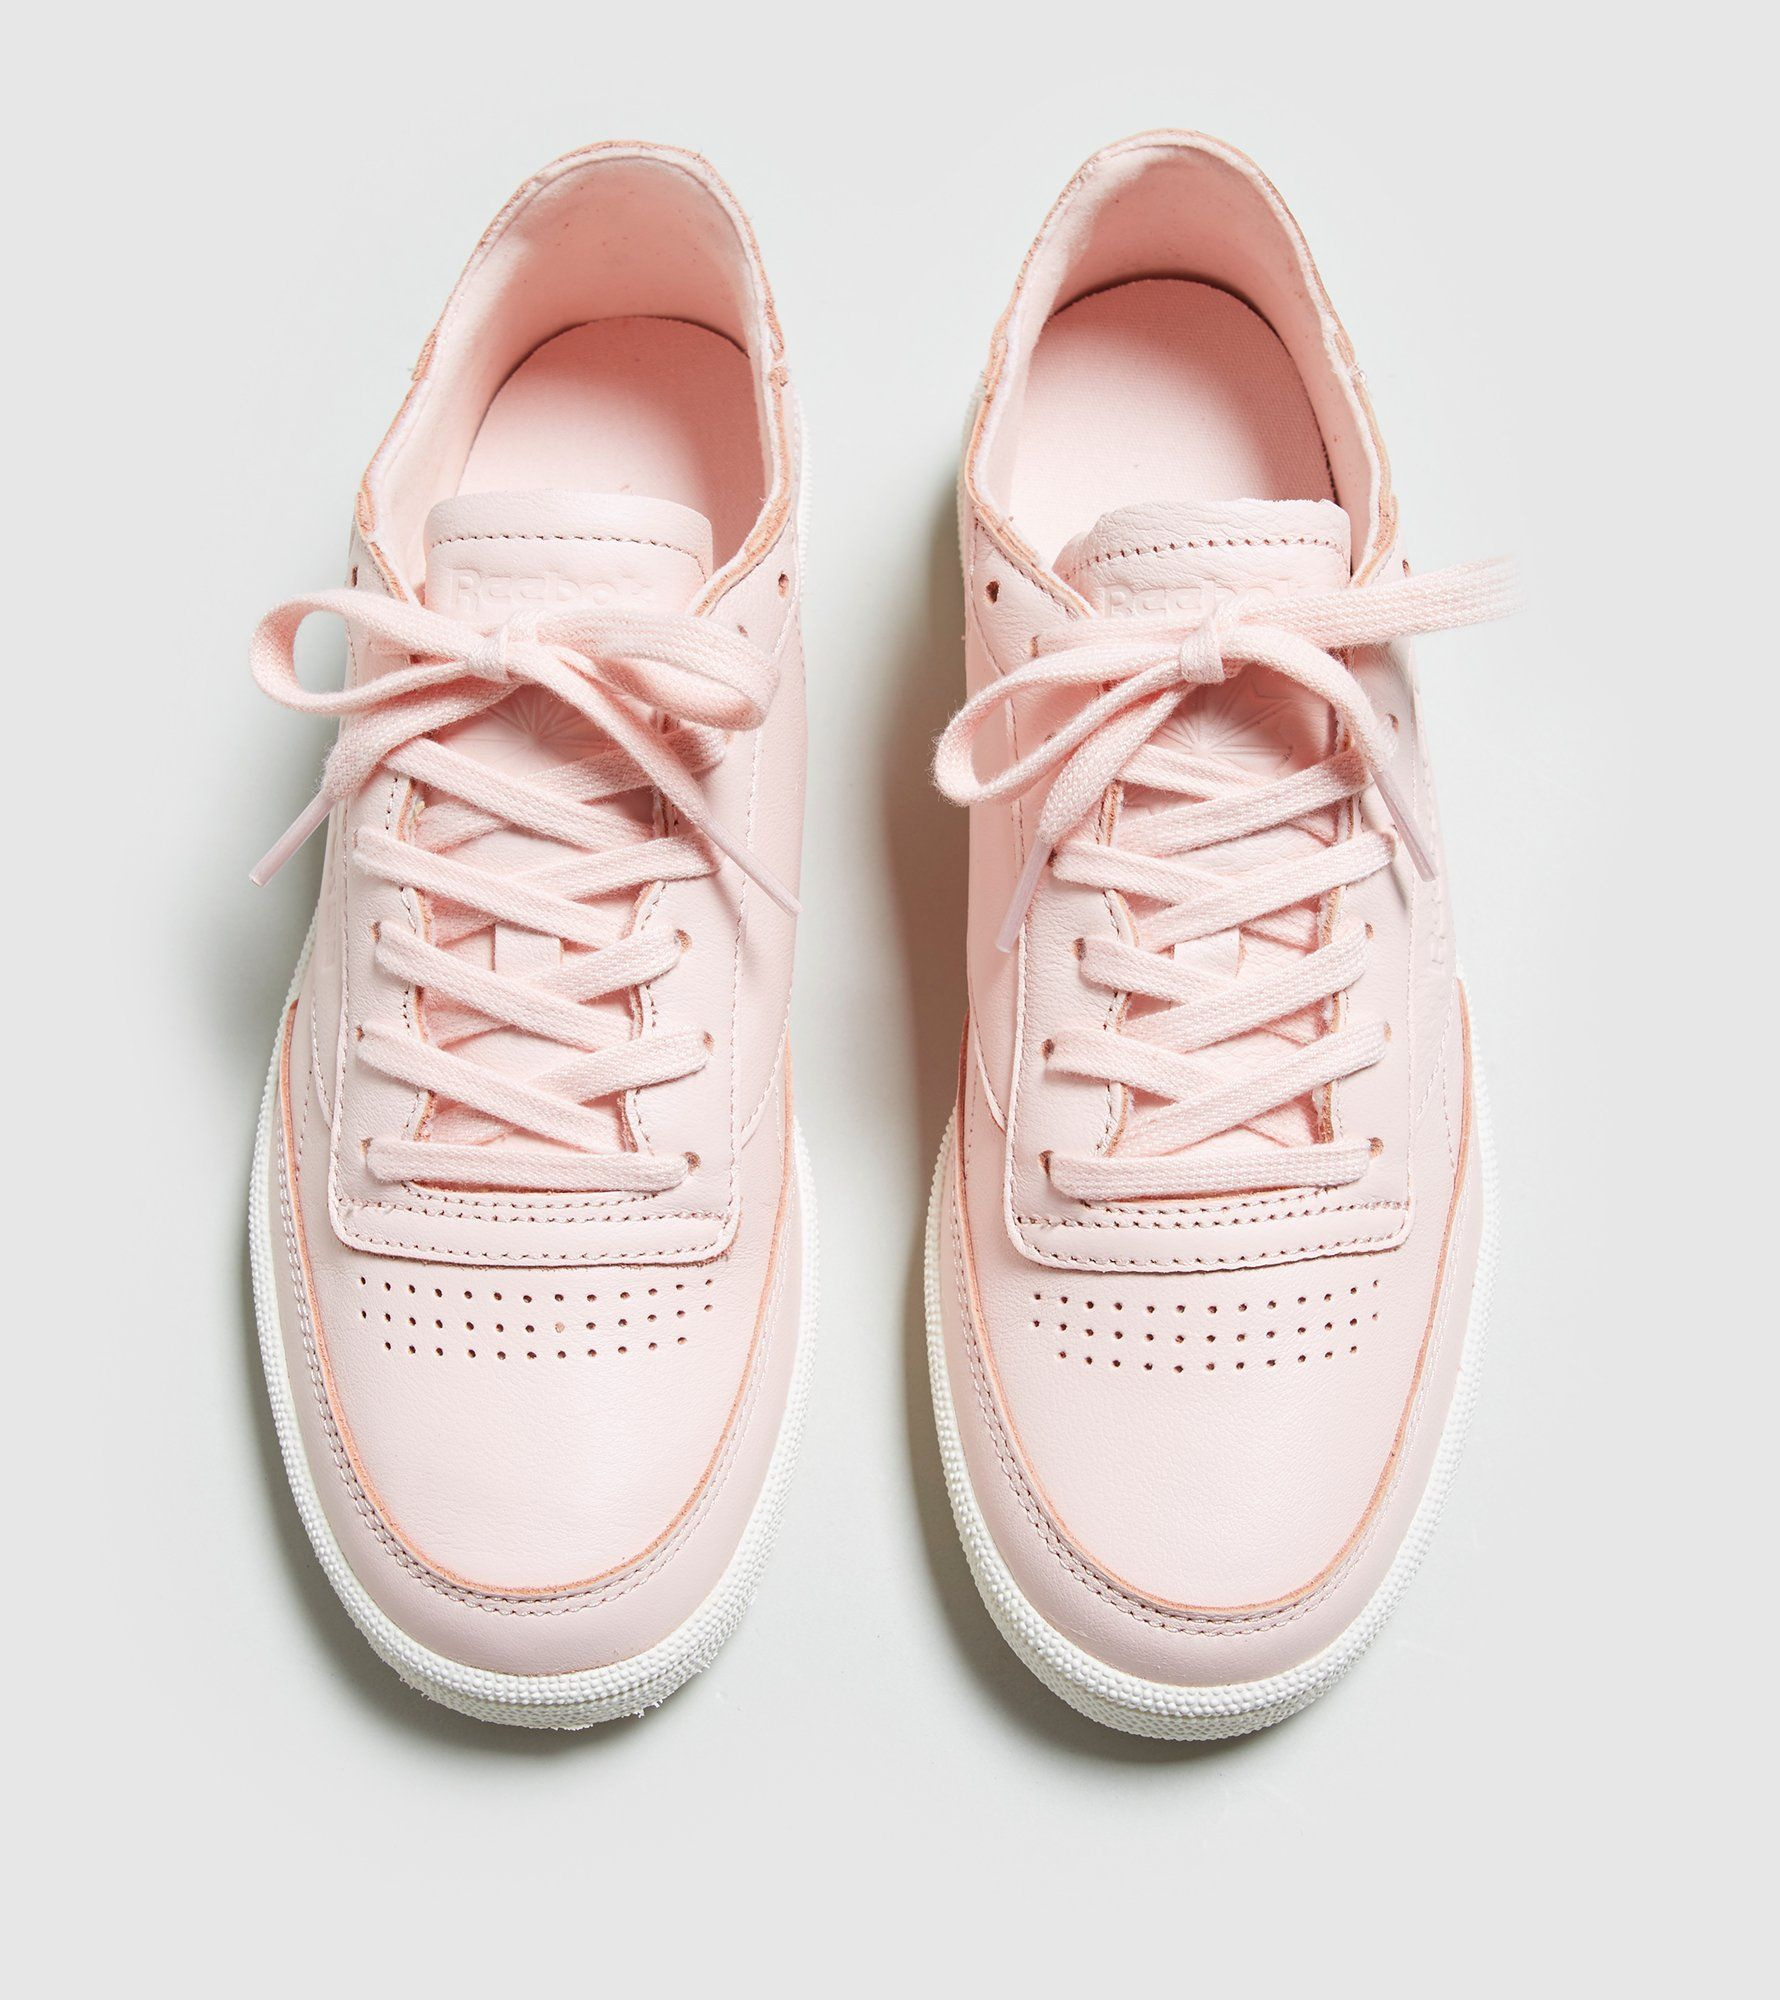 Reebok Club C 85 Deconstructed Women's